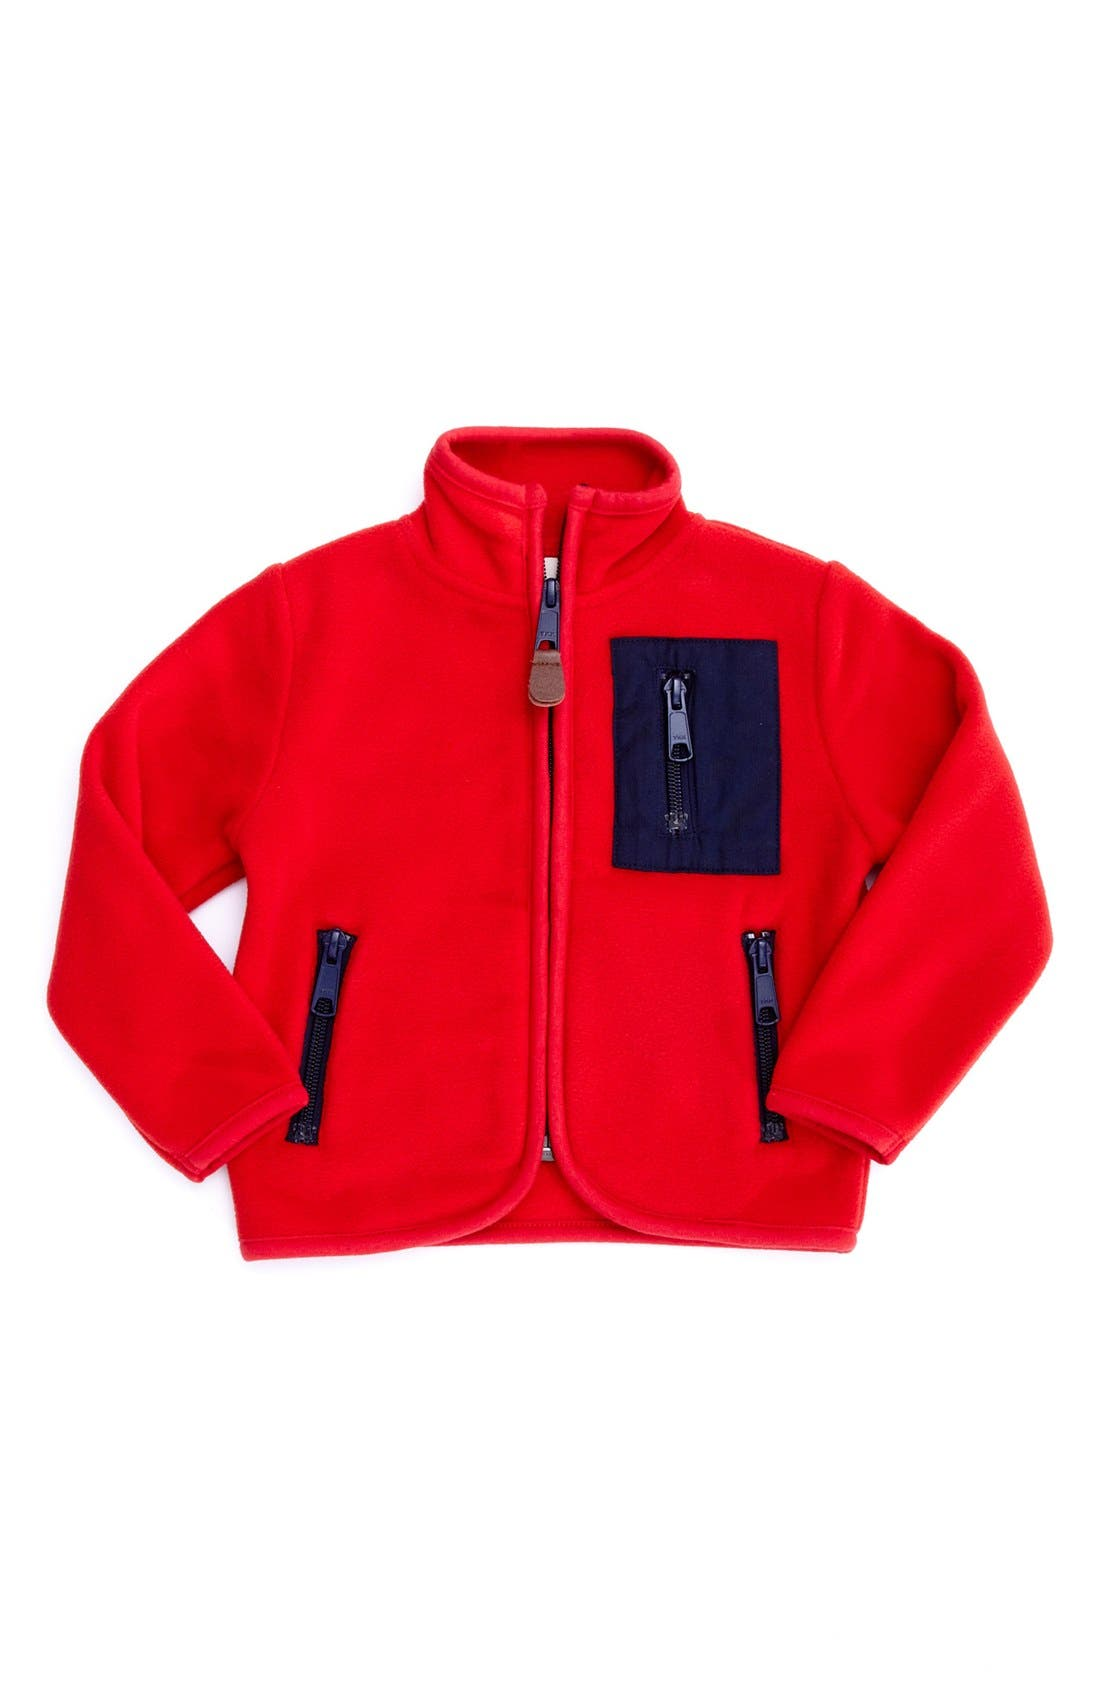 Alternate Image 1 Selected - Peek 'Raymond' Zip Fleece (Baby Boys)